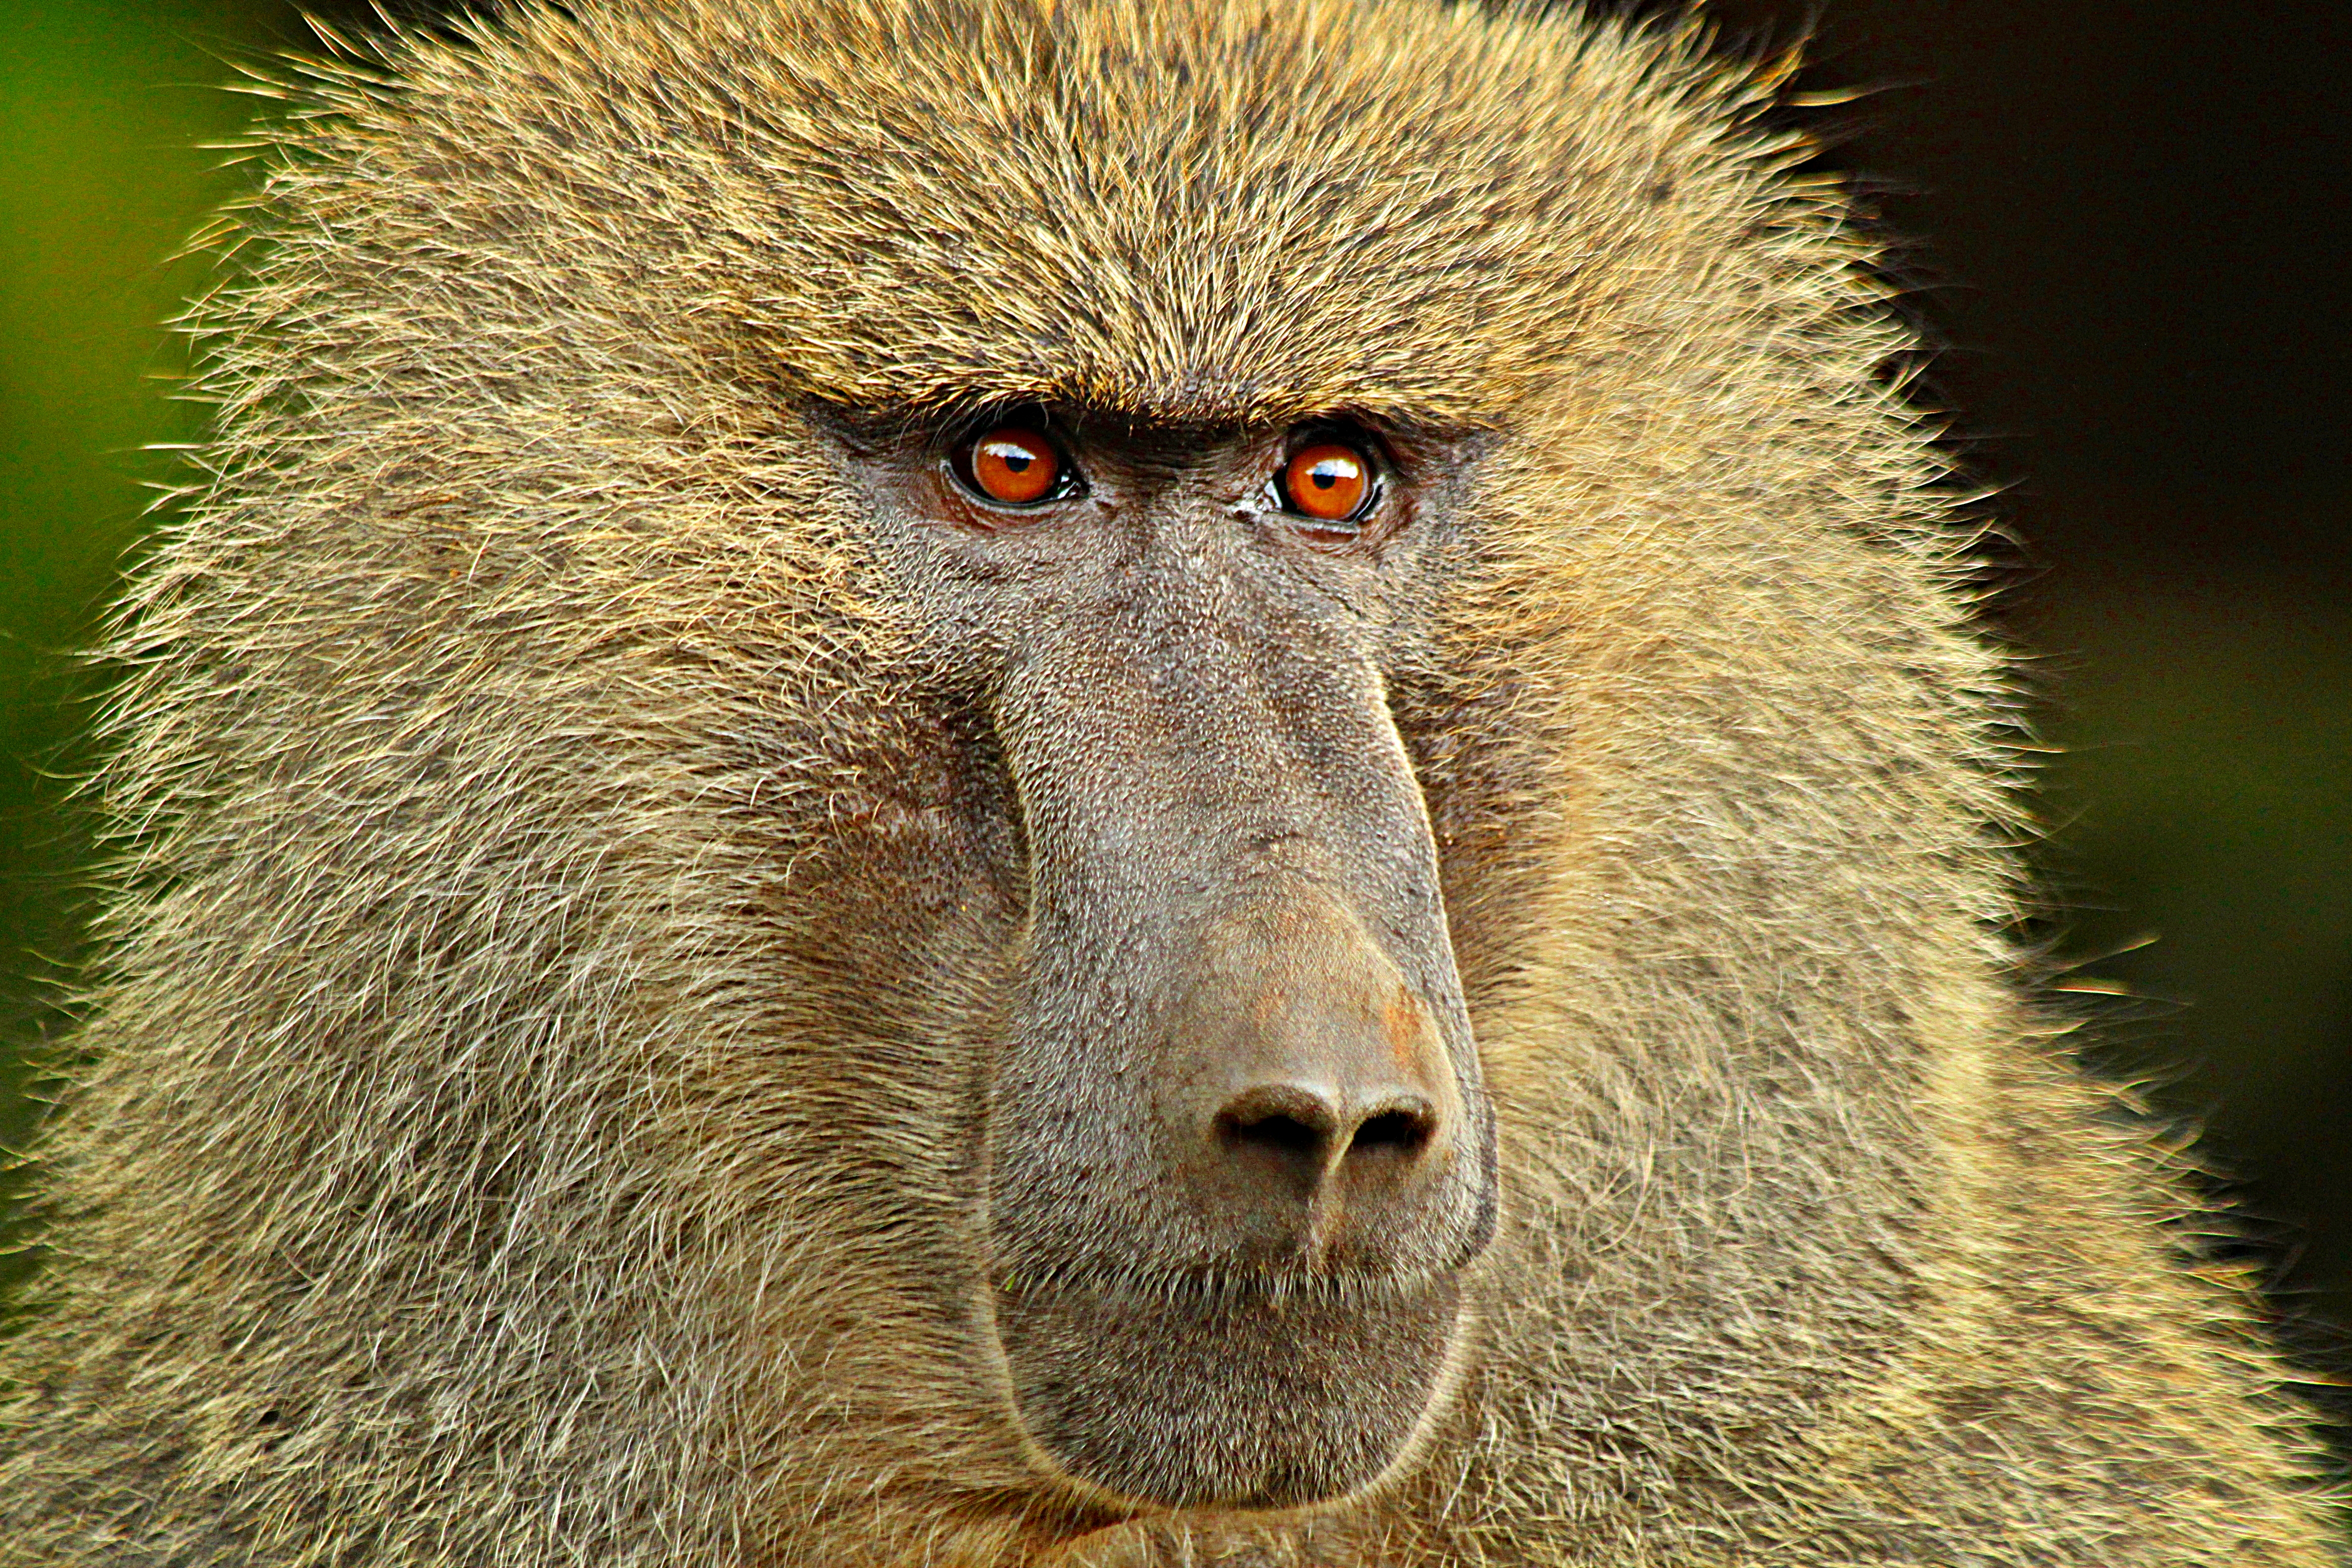 http://upload.wikimedia.org/wikipedia/commons/9/97/BABOON-e.JPG?uselang=fr